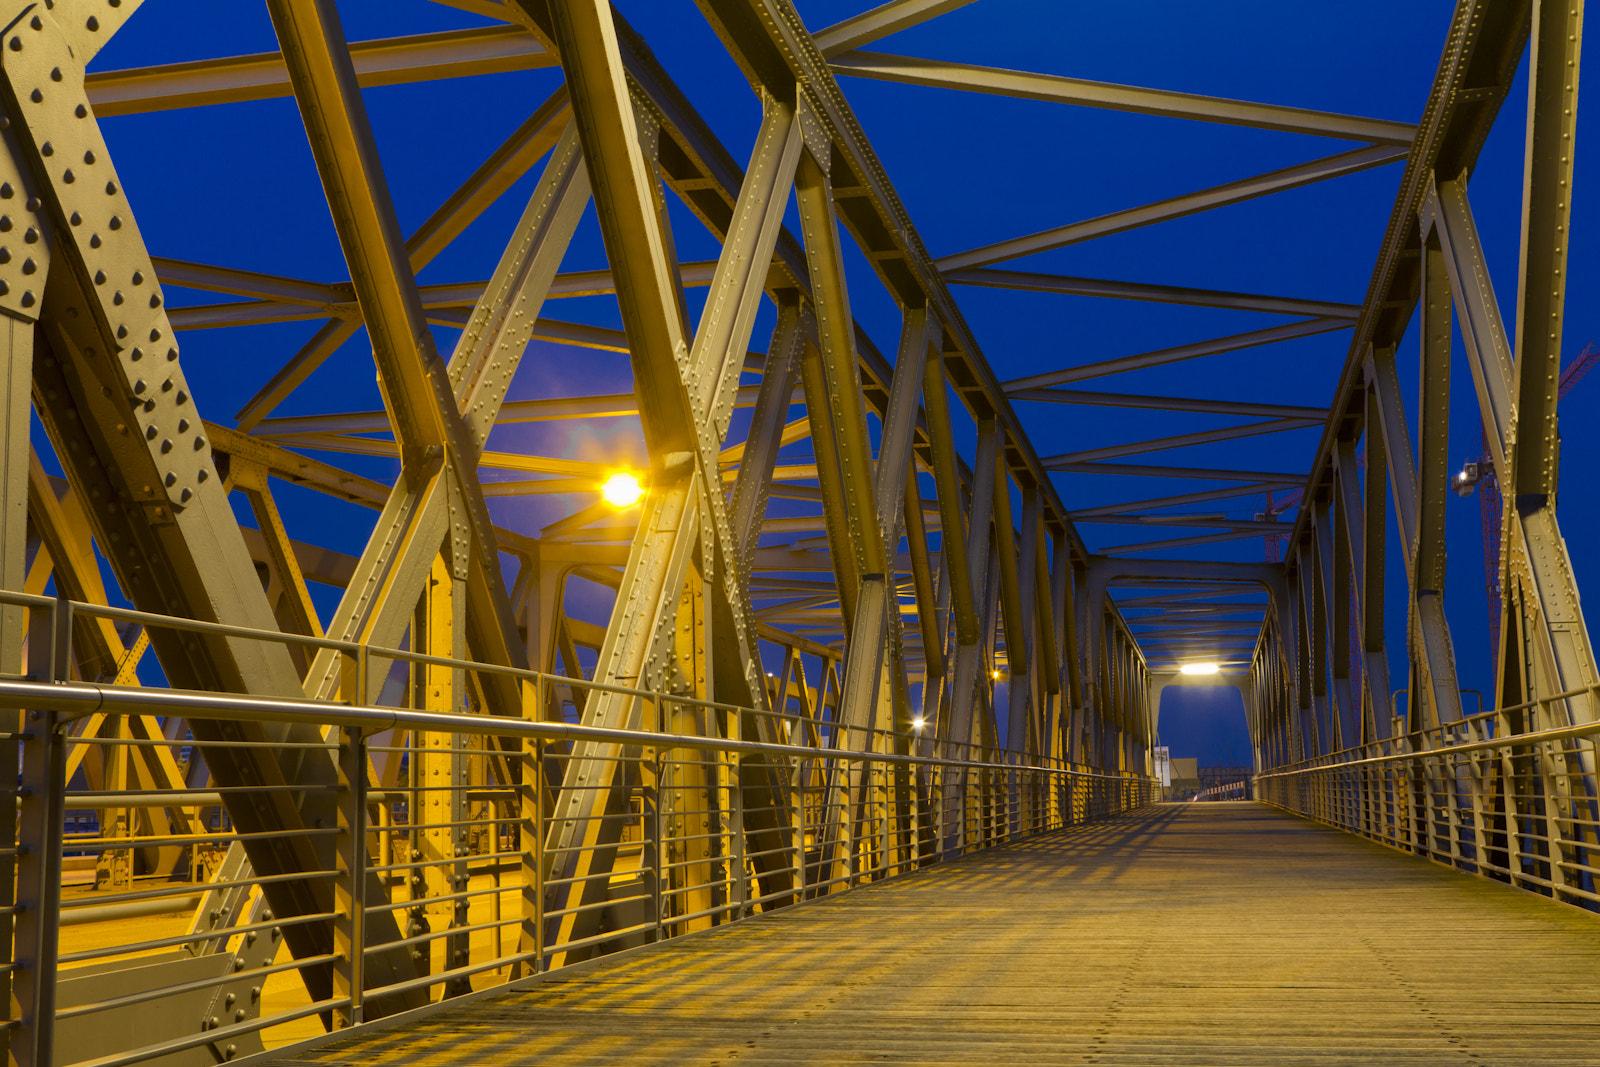 Photograph Steel Frame Bridge At Night by Marco Wahl on 500px